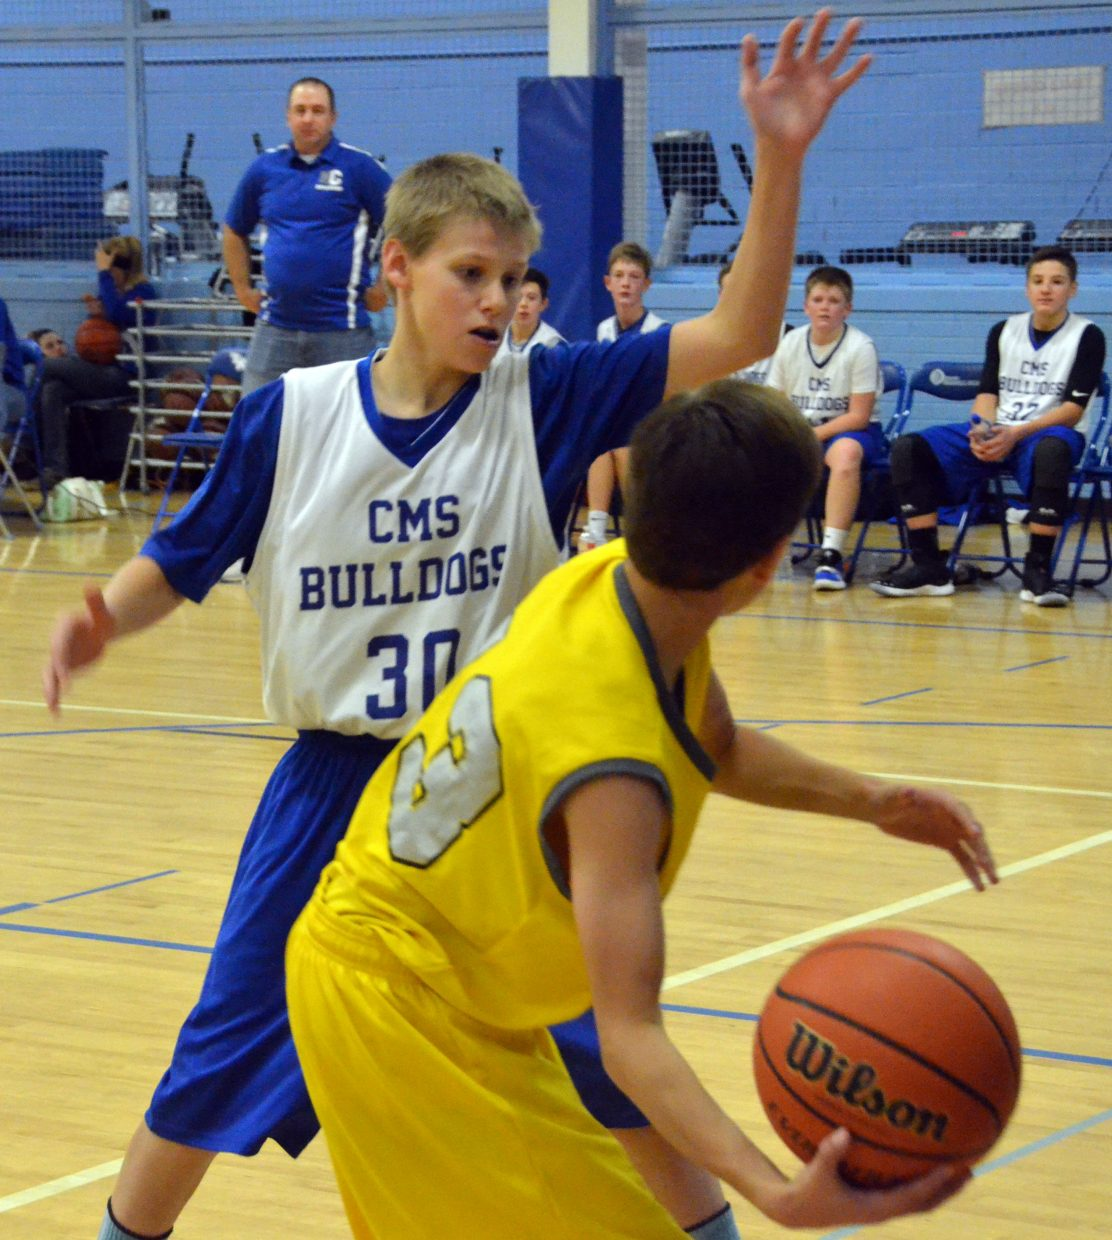 Craig Middle School's Cord Cooper plays close defense against Meeker.